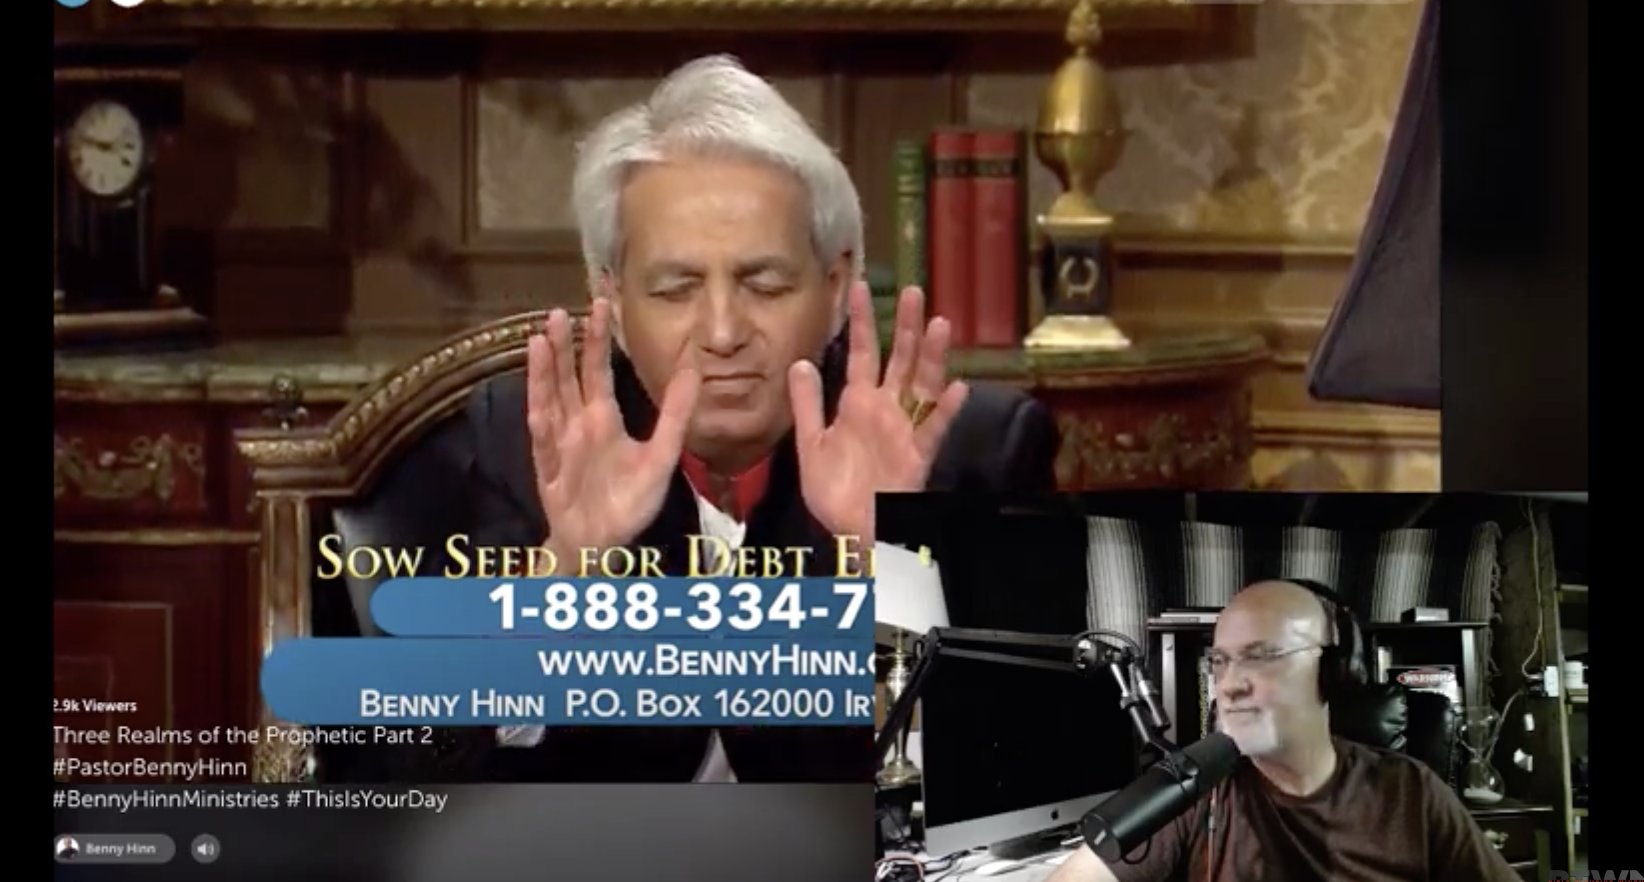 Benny Hinn Repents Then Returns To His Sin! | Bible Thumping